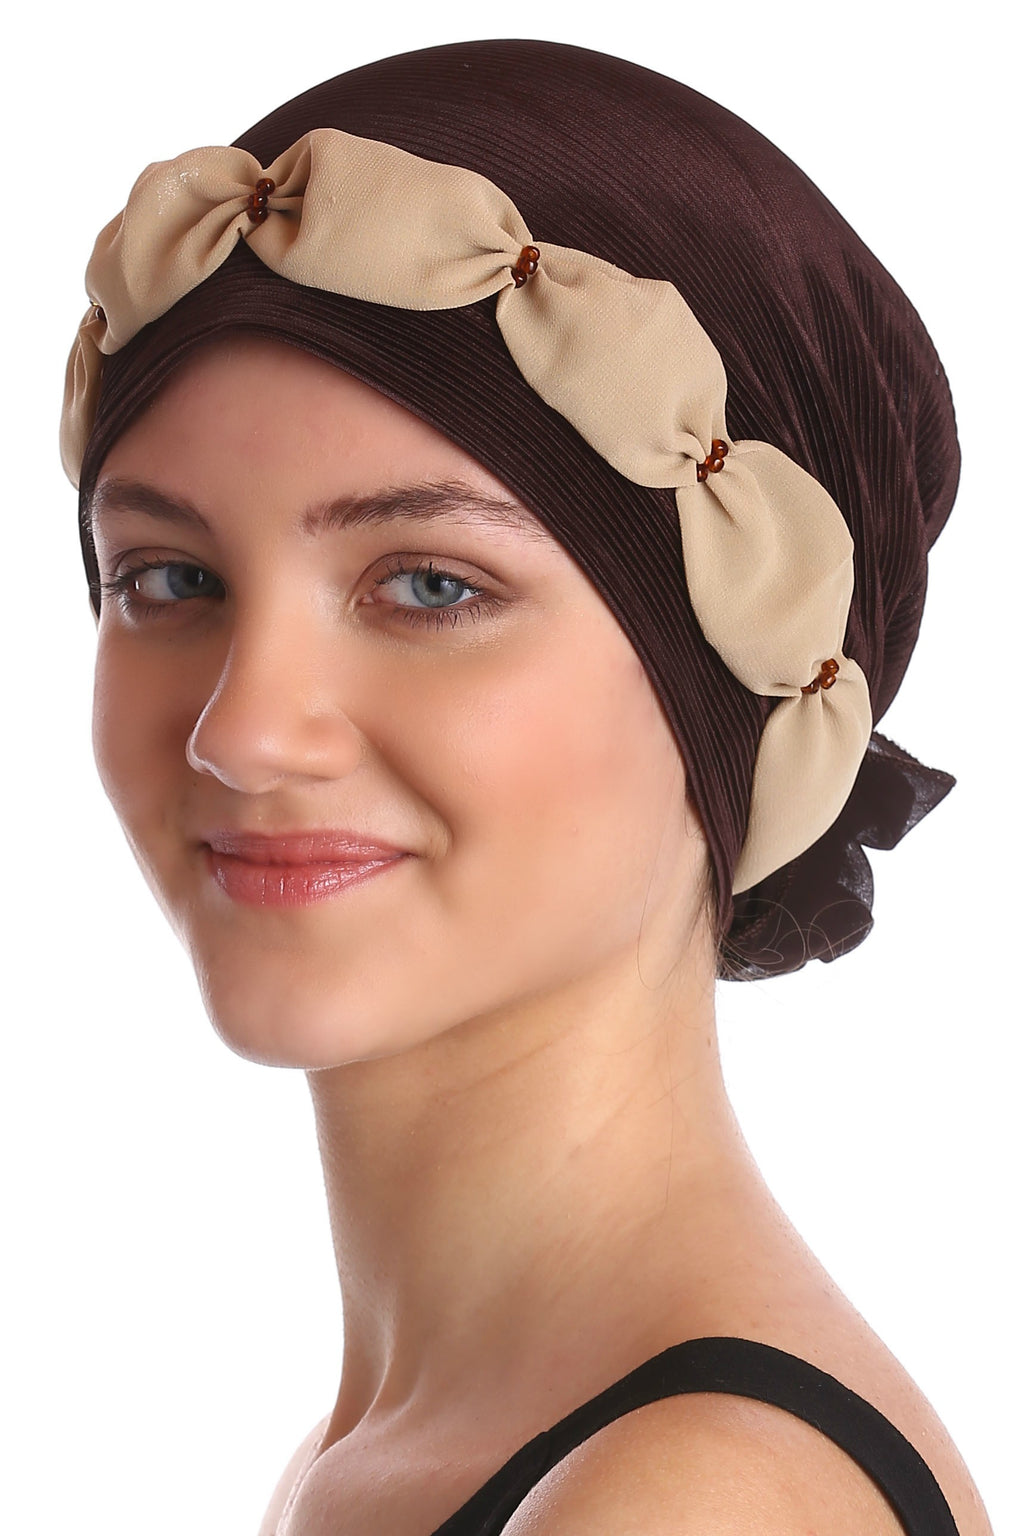 Shirred & Beaded Headwear - Brown/Beige